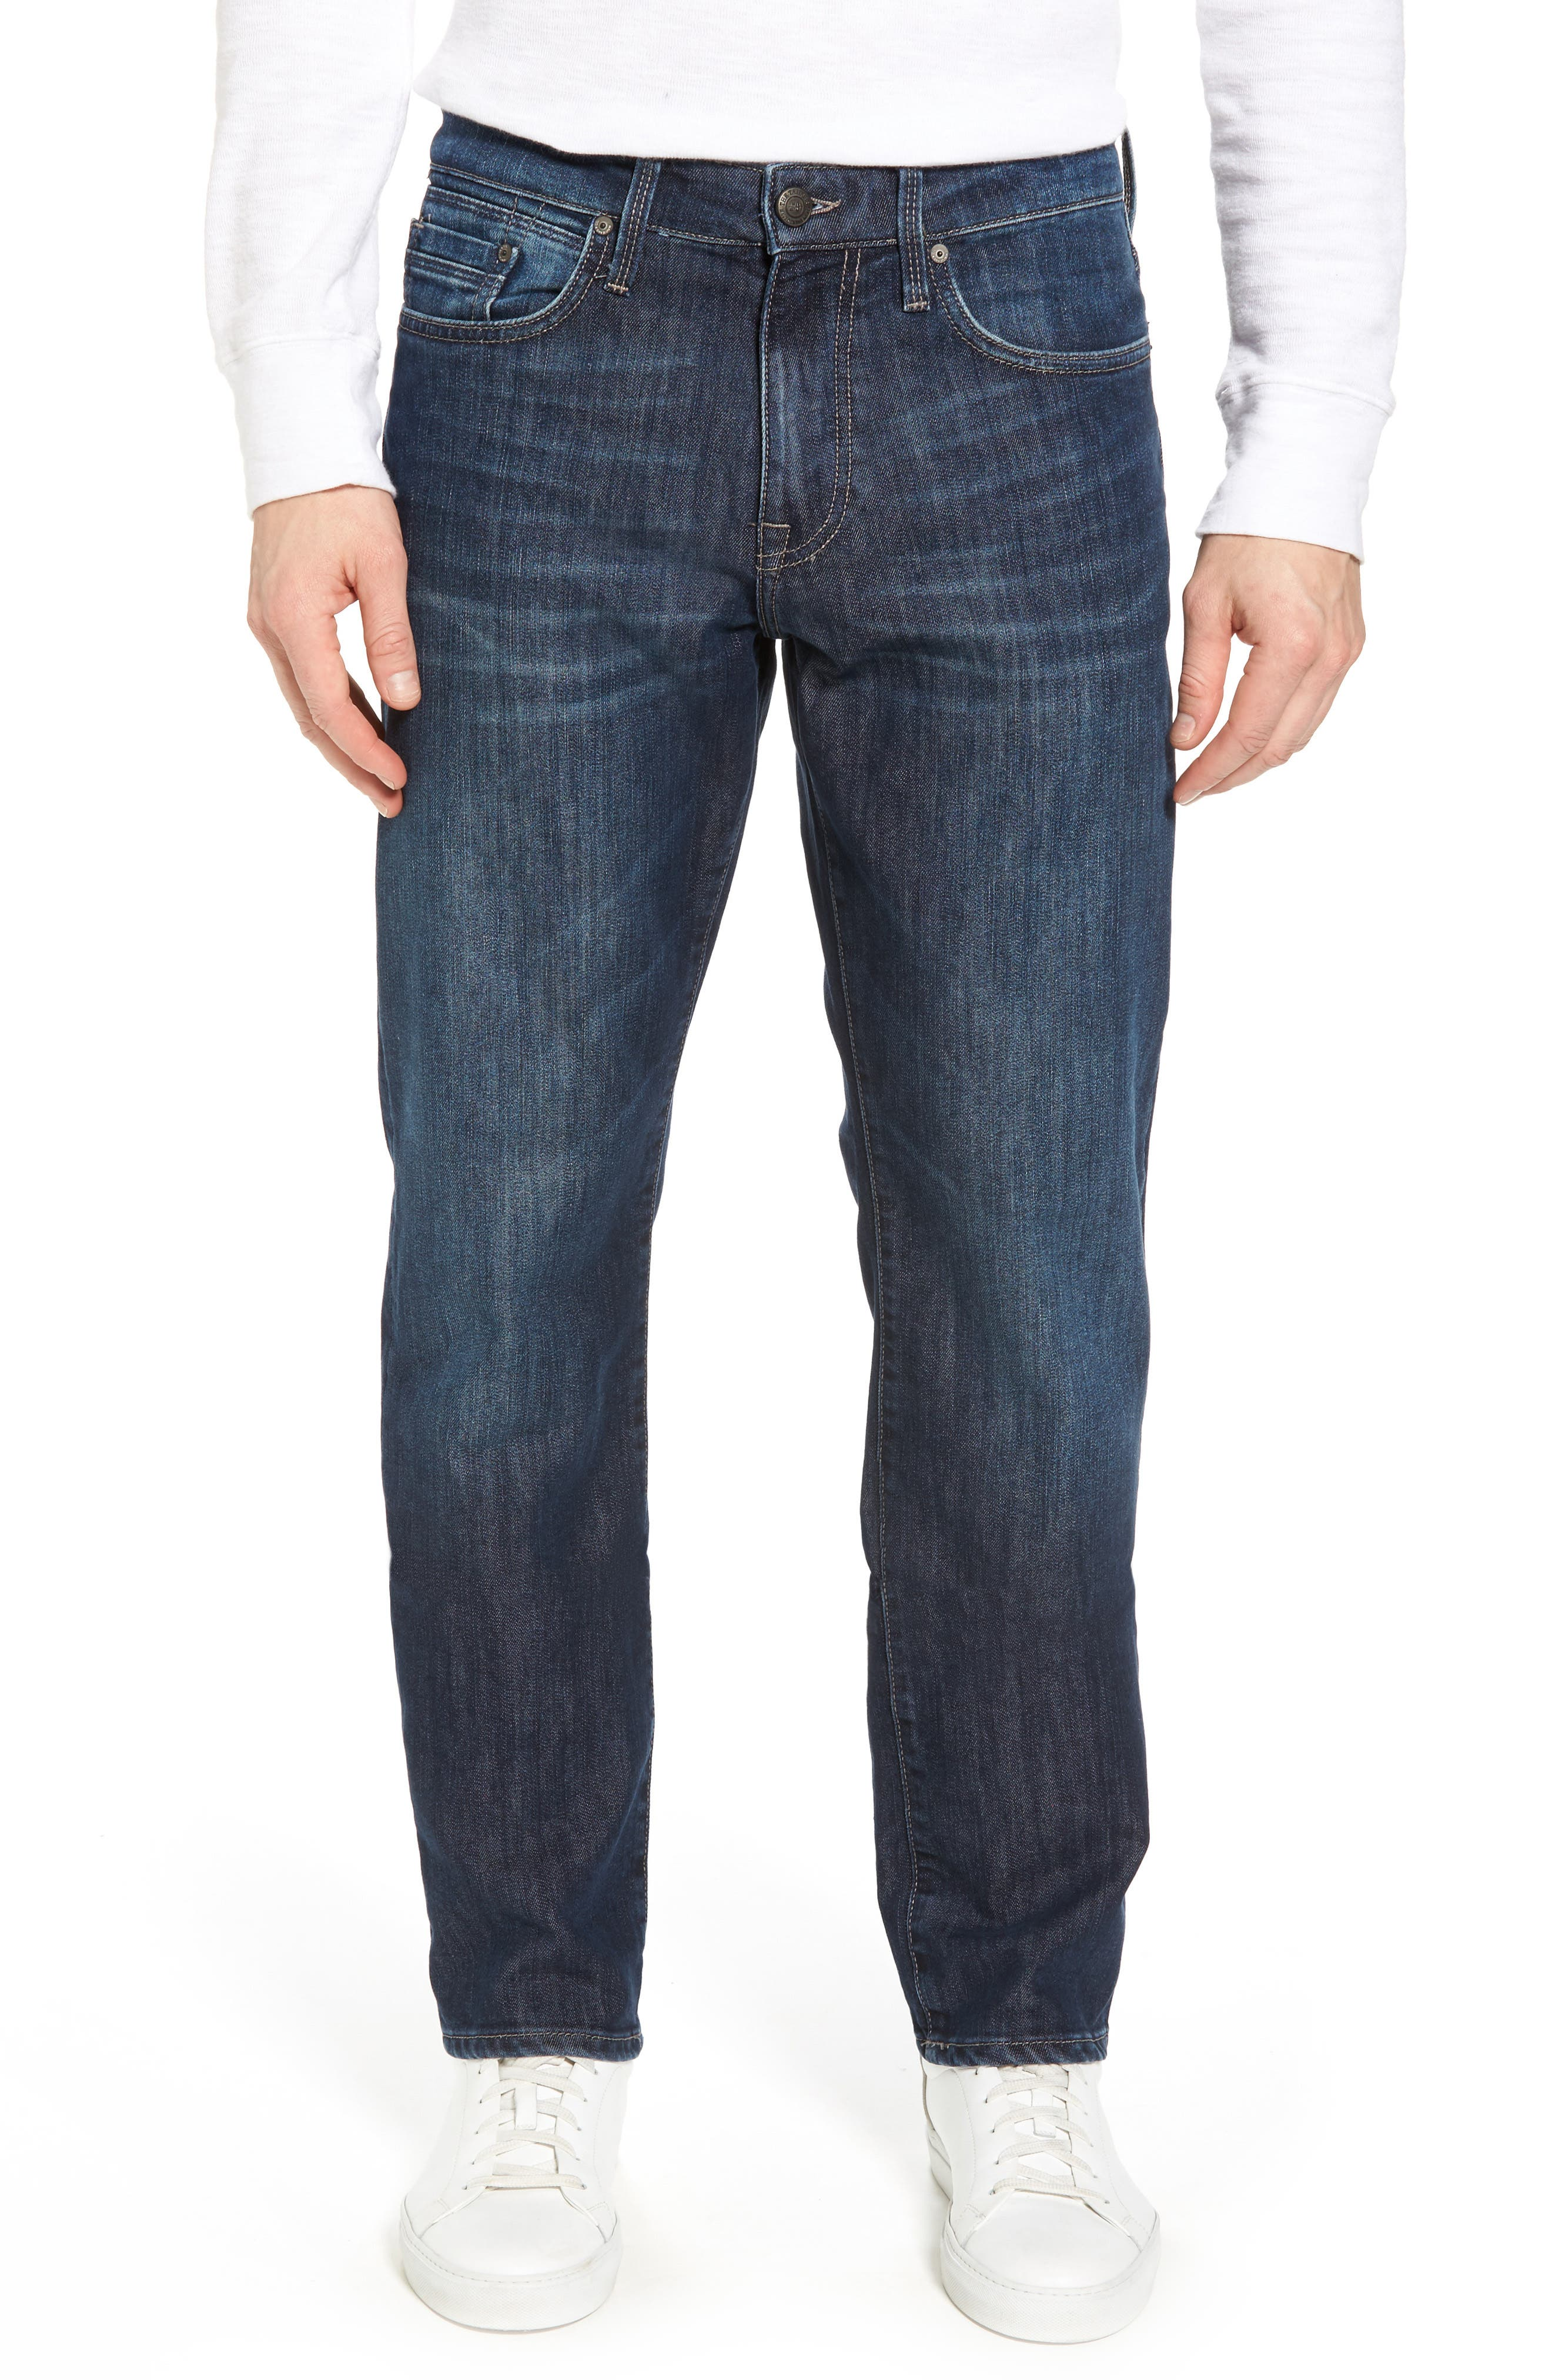 Myles Straight Leg Jeans,                         Main,                         color, Deep Brushed Stanford